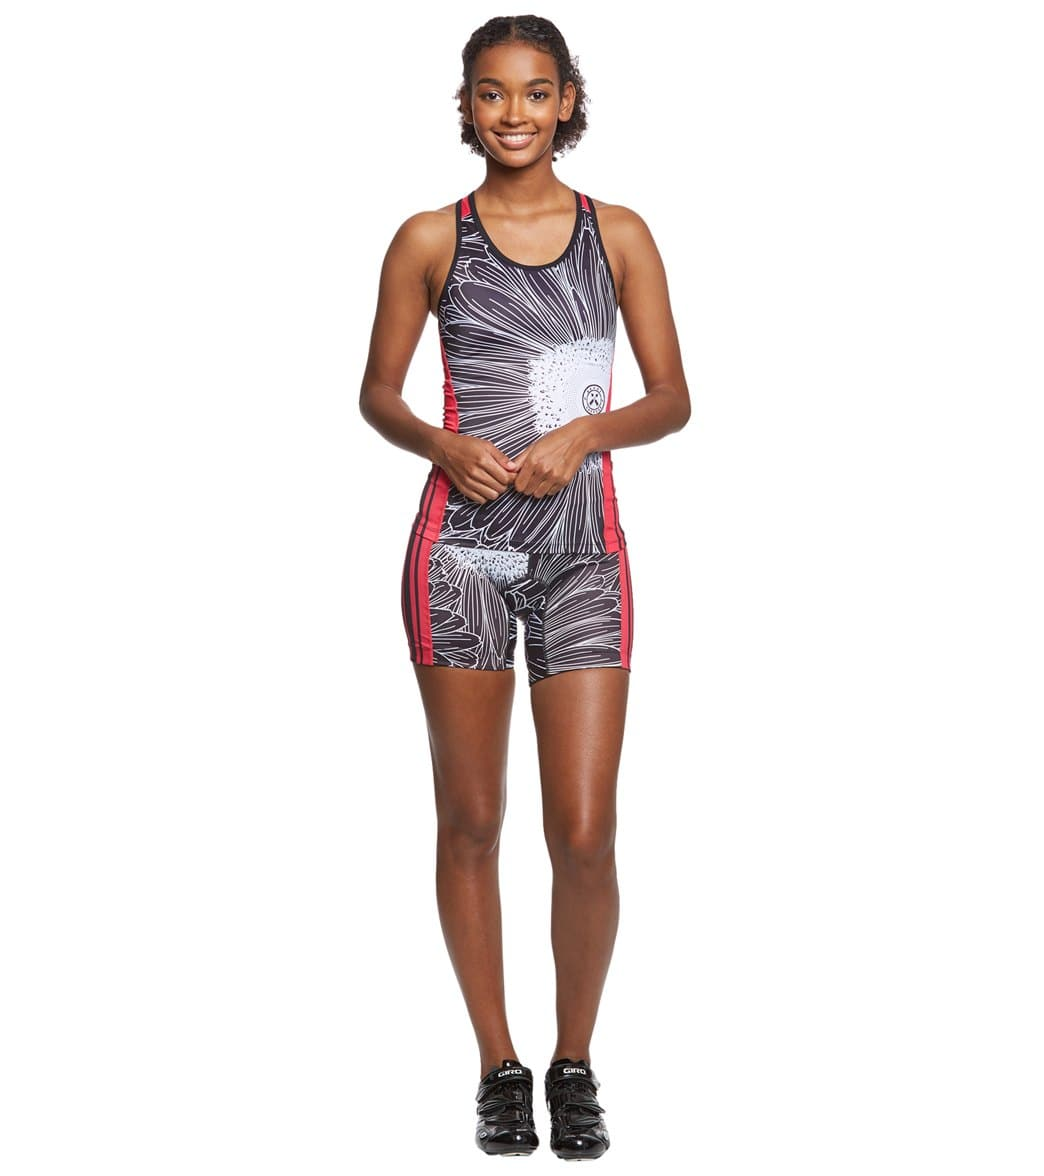 e1dce98c6 Coeur Women's Tri Tank at SwimOutlet.com - Free Shipping